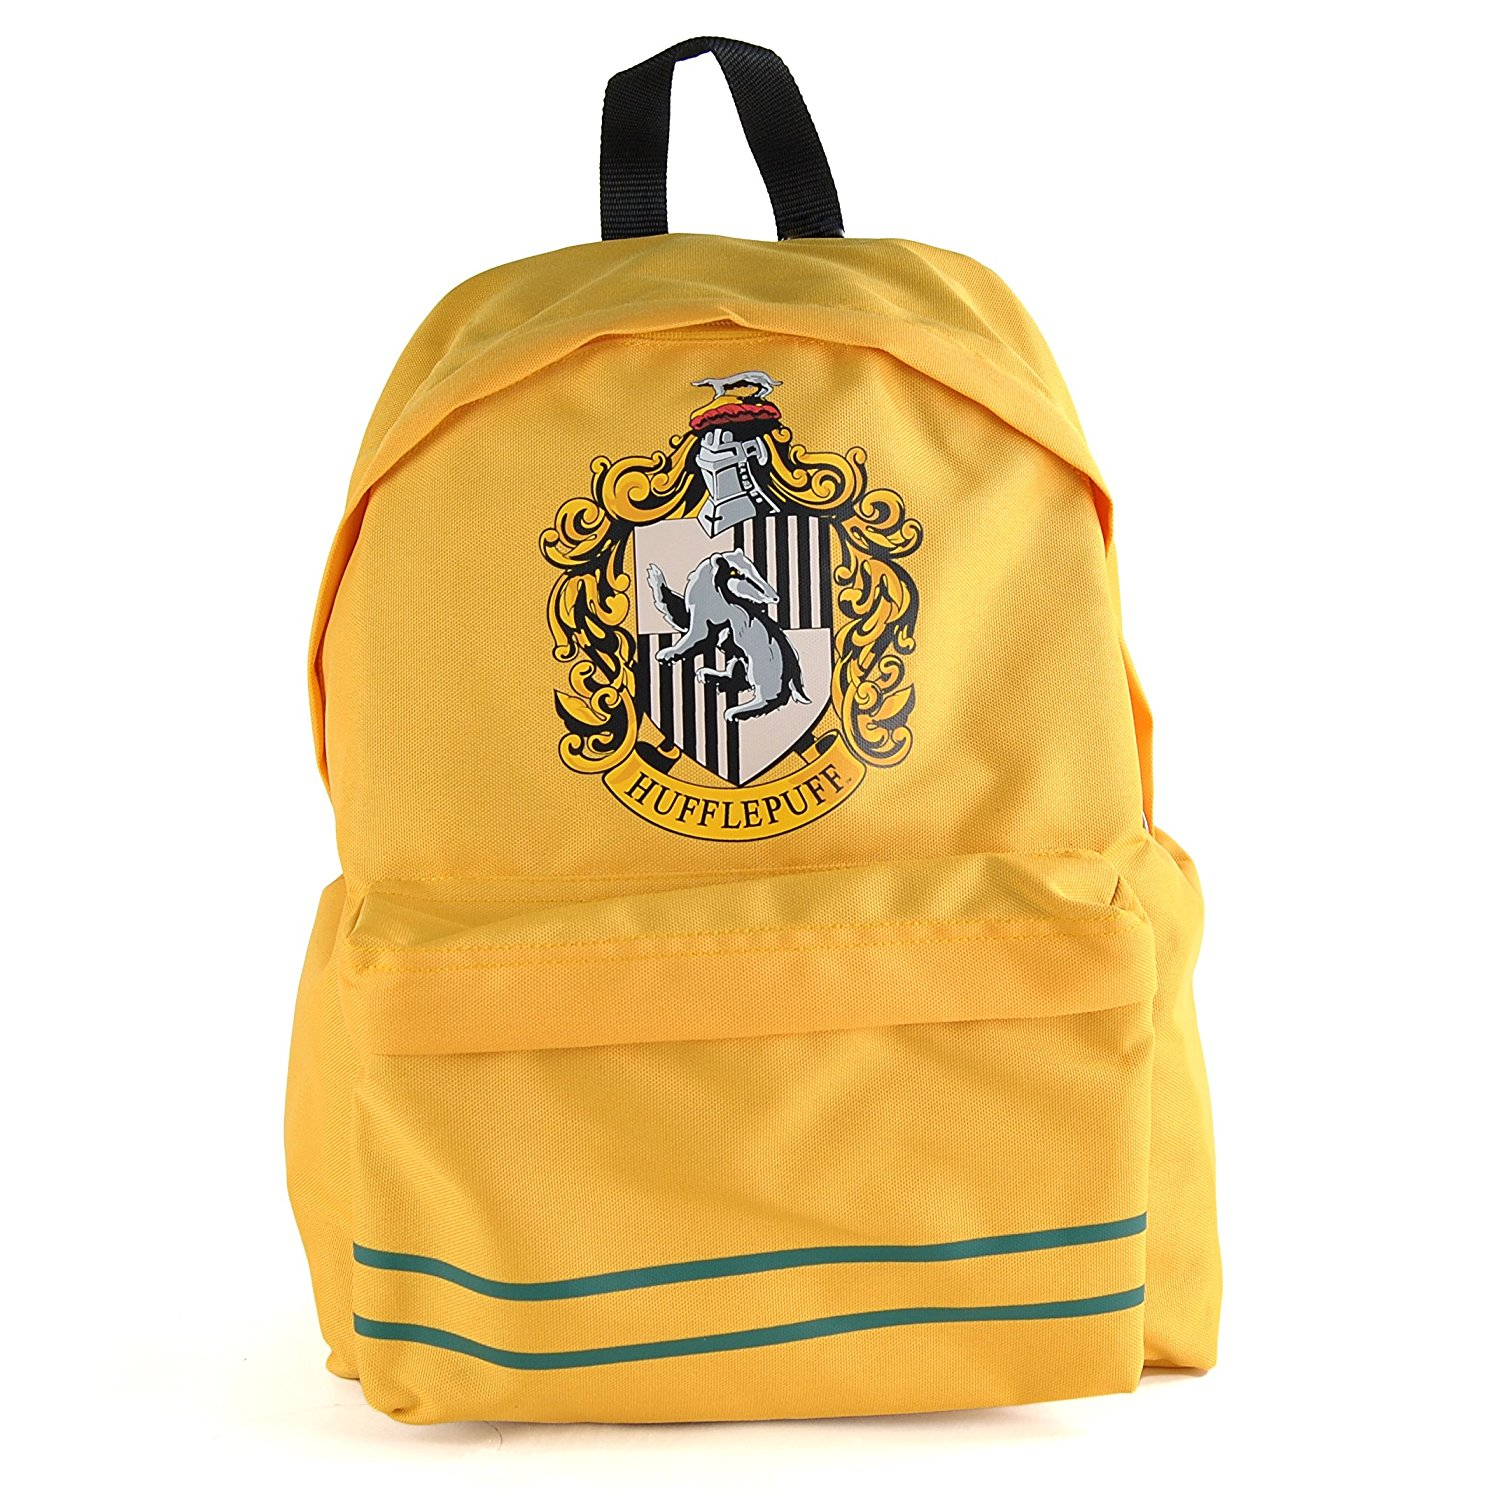 Harry Potter Hufflepuff Children's Rucksack